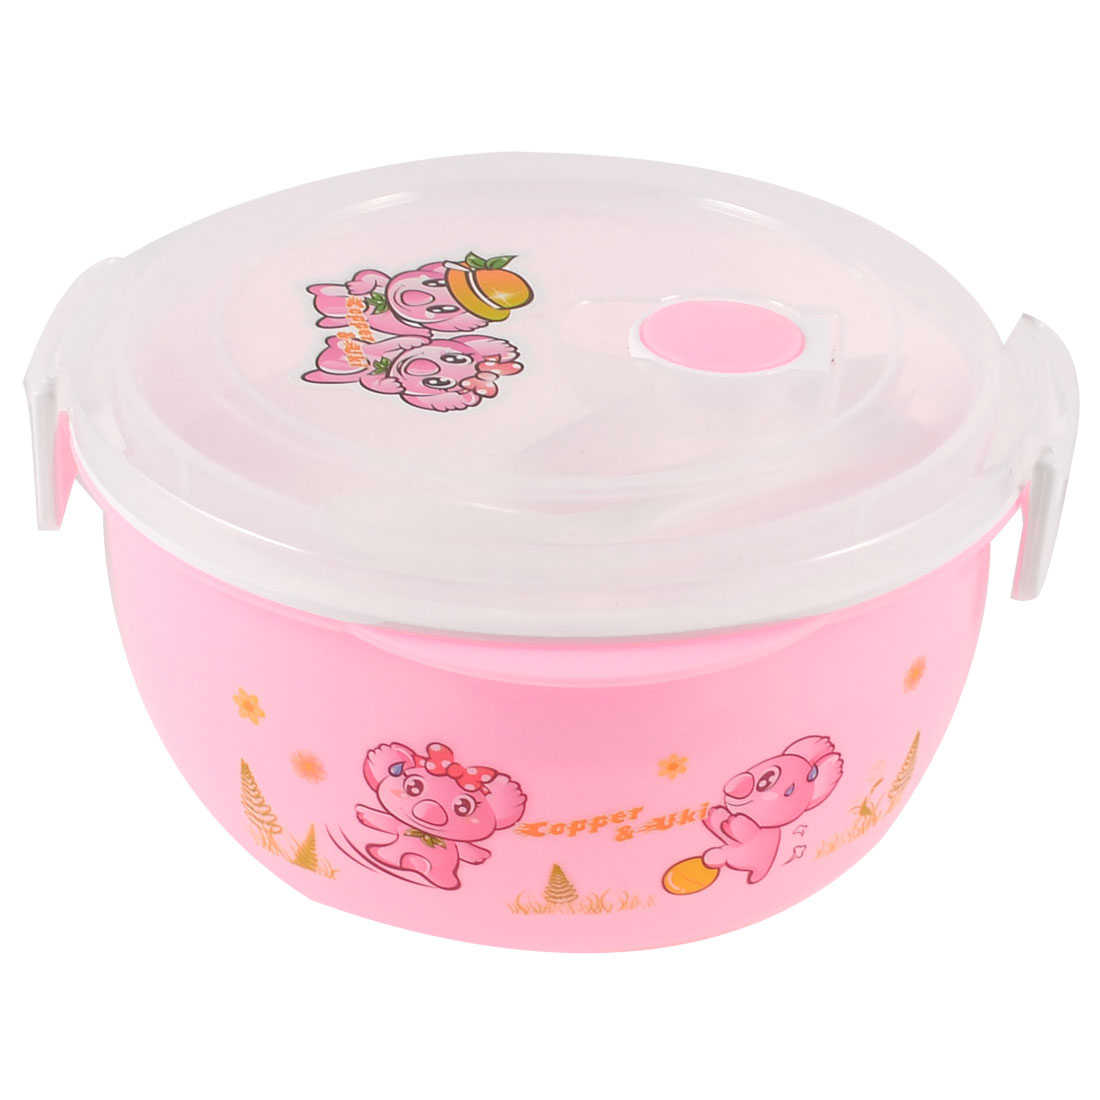 Picnic Camping Hole Design Dual Layers Round Dinner Case Lunch Box Pink